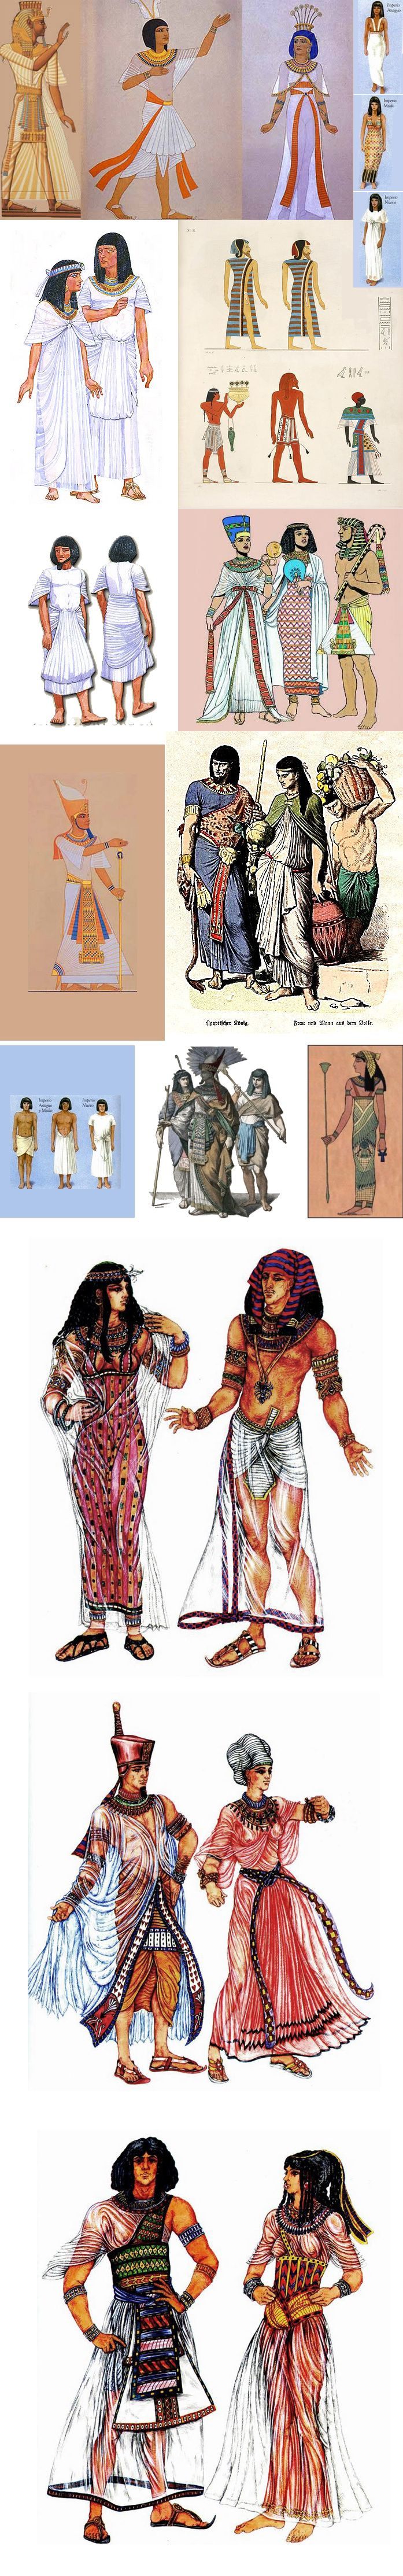 Egyptian social class clothing picture. (n.d.). Retrieved from https://s-media-cache-ak0.pinimg.com/originals/76/59/56/7659563d99ae844f84980298fd1bfbe8.jpg. This picture provides a visual for the clothing worn by different social classes in Egypt.  Students would first gain a knowledge of the social classes through reading passages and then could use the picture to write a description of the clothing worn in each class.